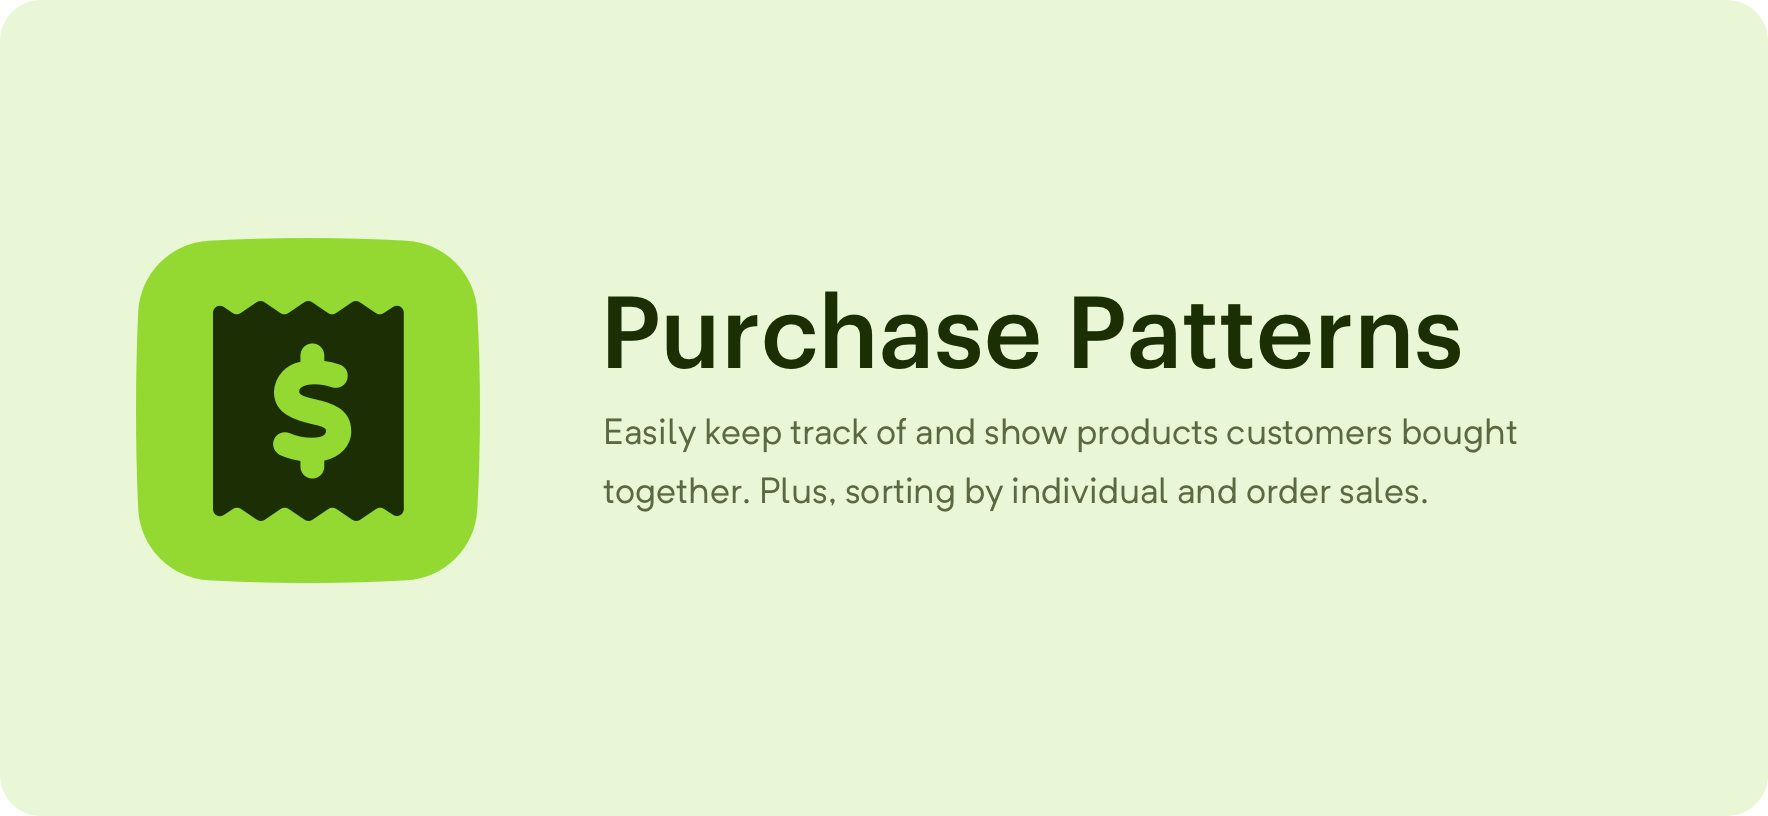 Purchase Patterns